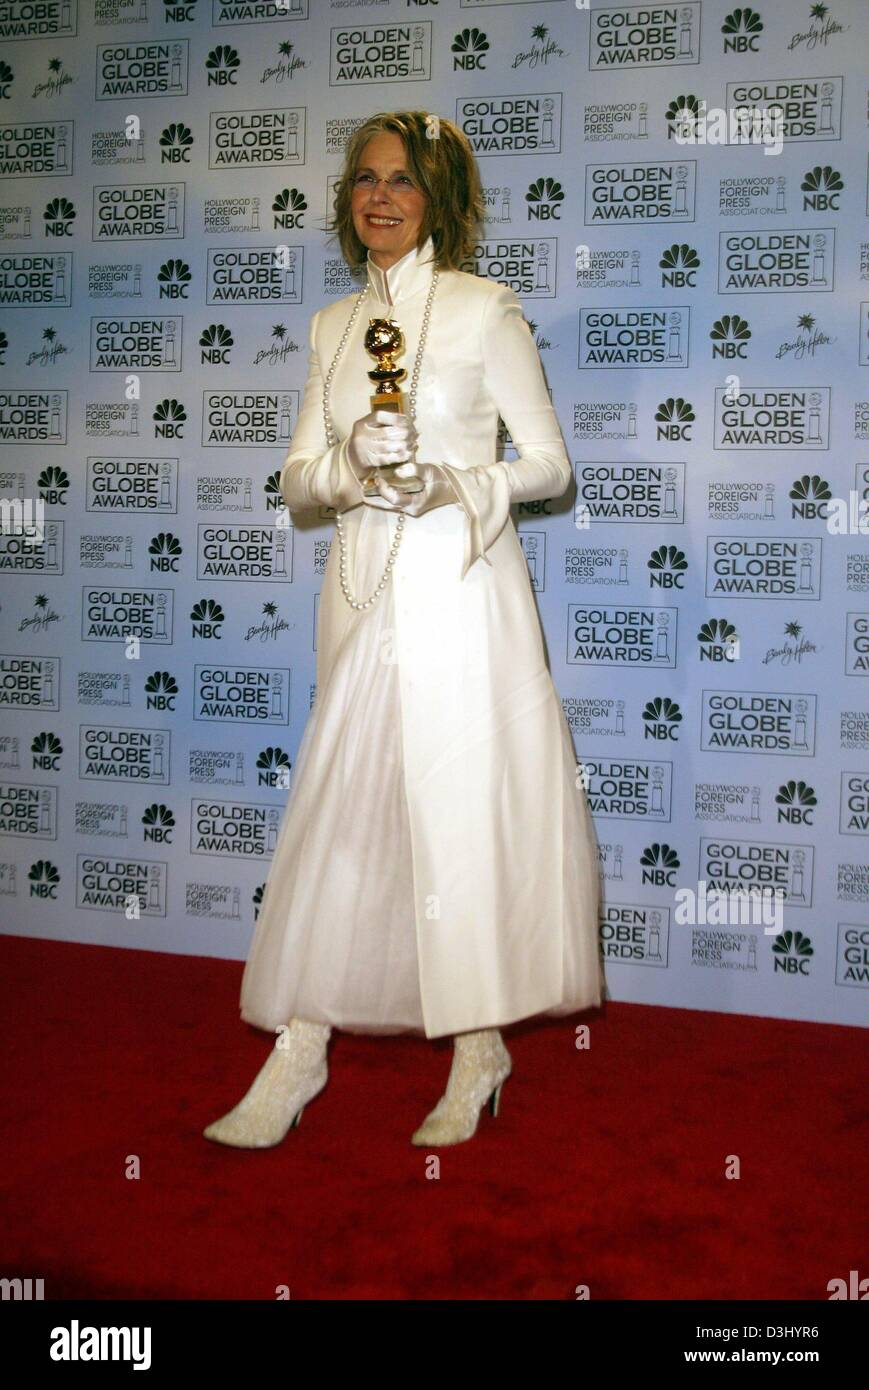 (dpa) - US actress Diane Keaton smiles as she poses with her trophy after the Golden Globe Awards in Beverly Hills, - Stock Image